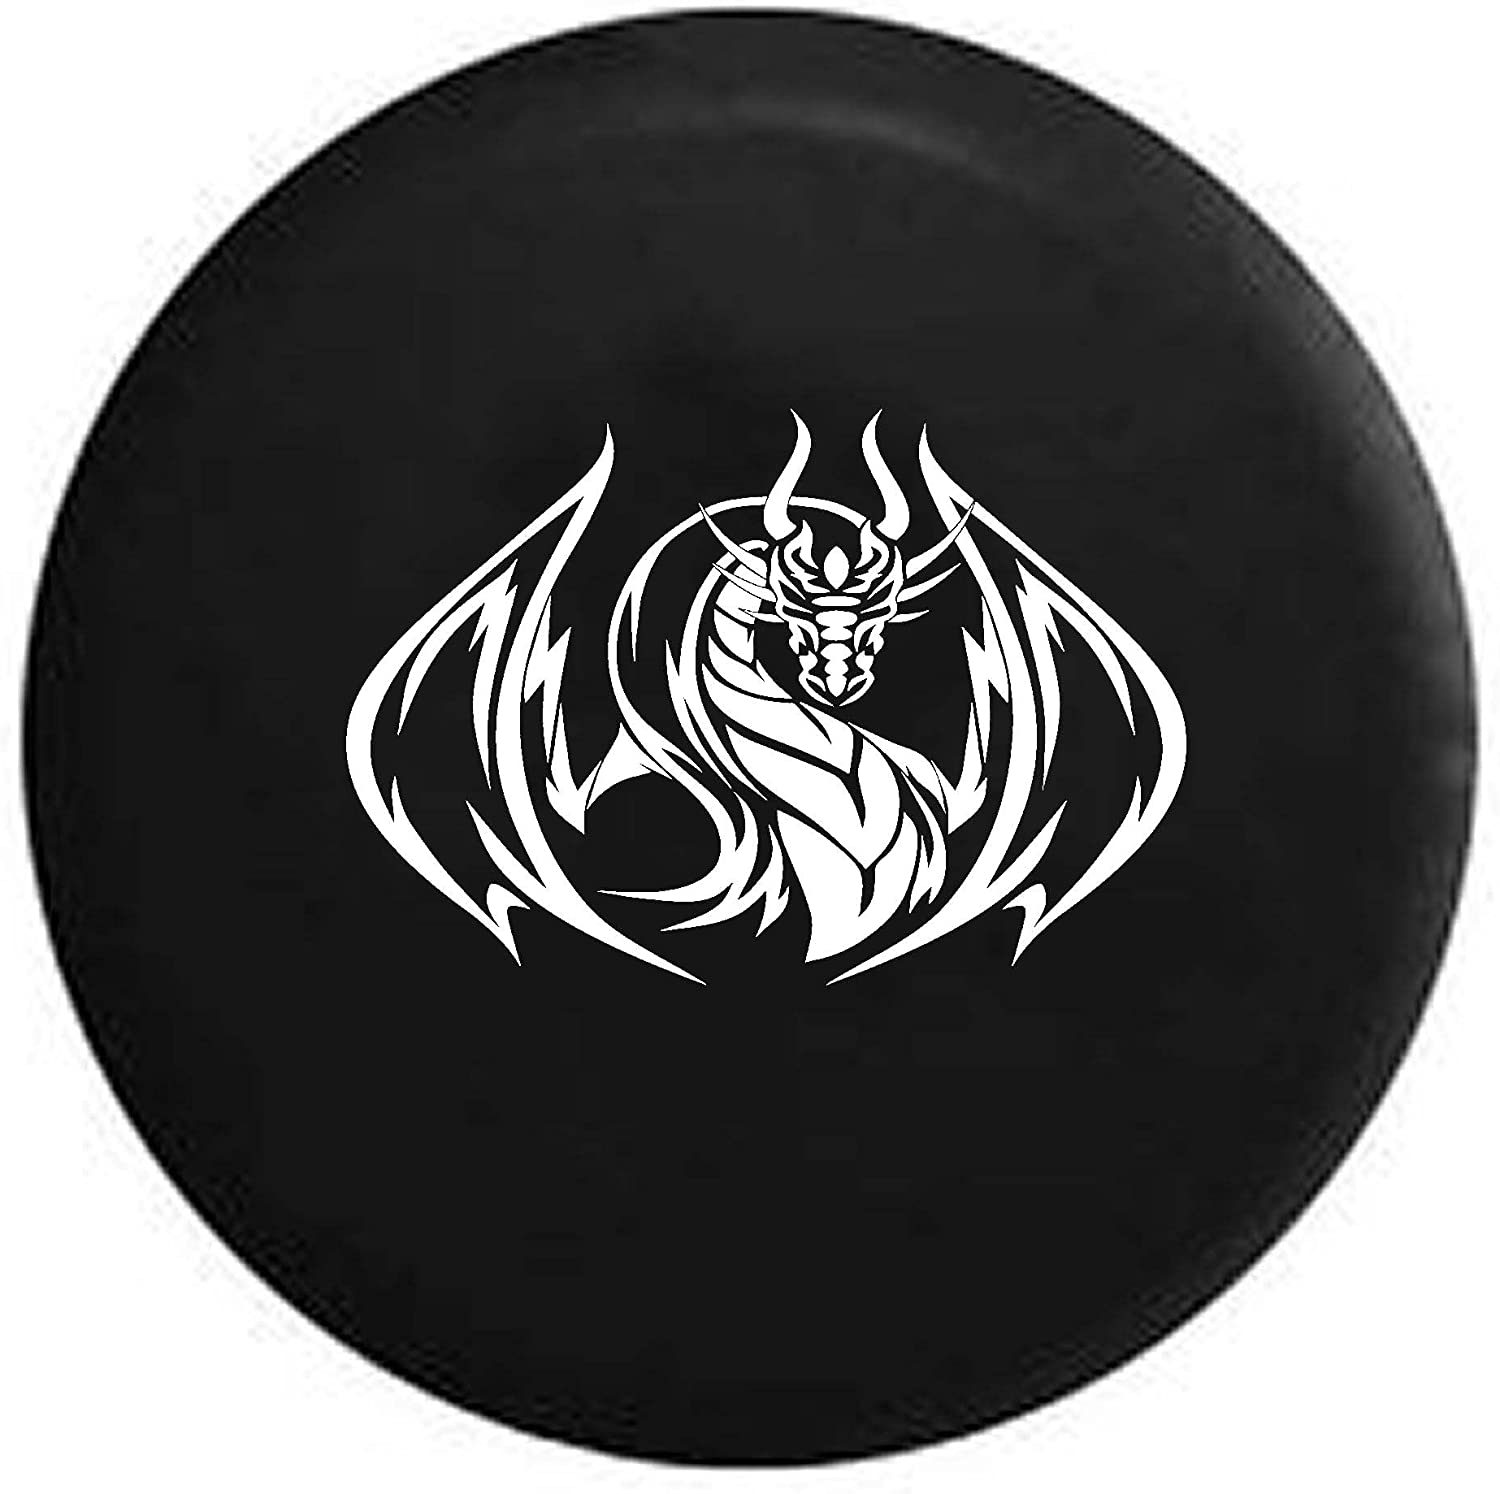 Pike Soaring Dragon Edition Unlimited Trailer RV Spare Tire Cover OEM Vinyl Black 29 in